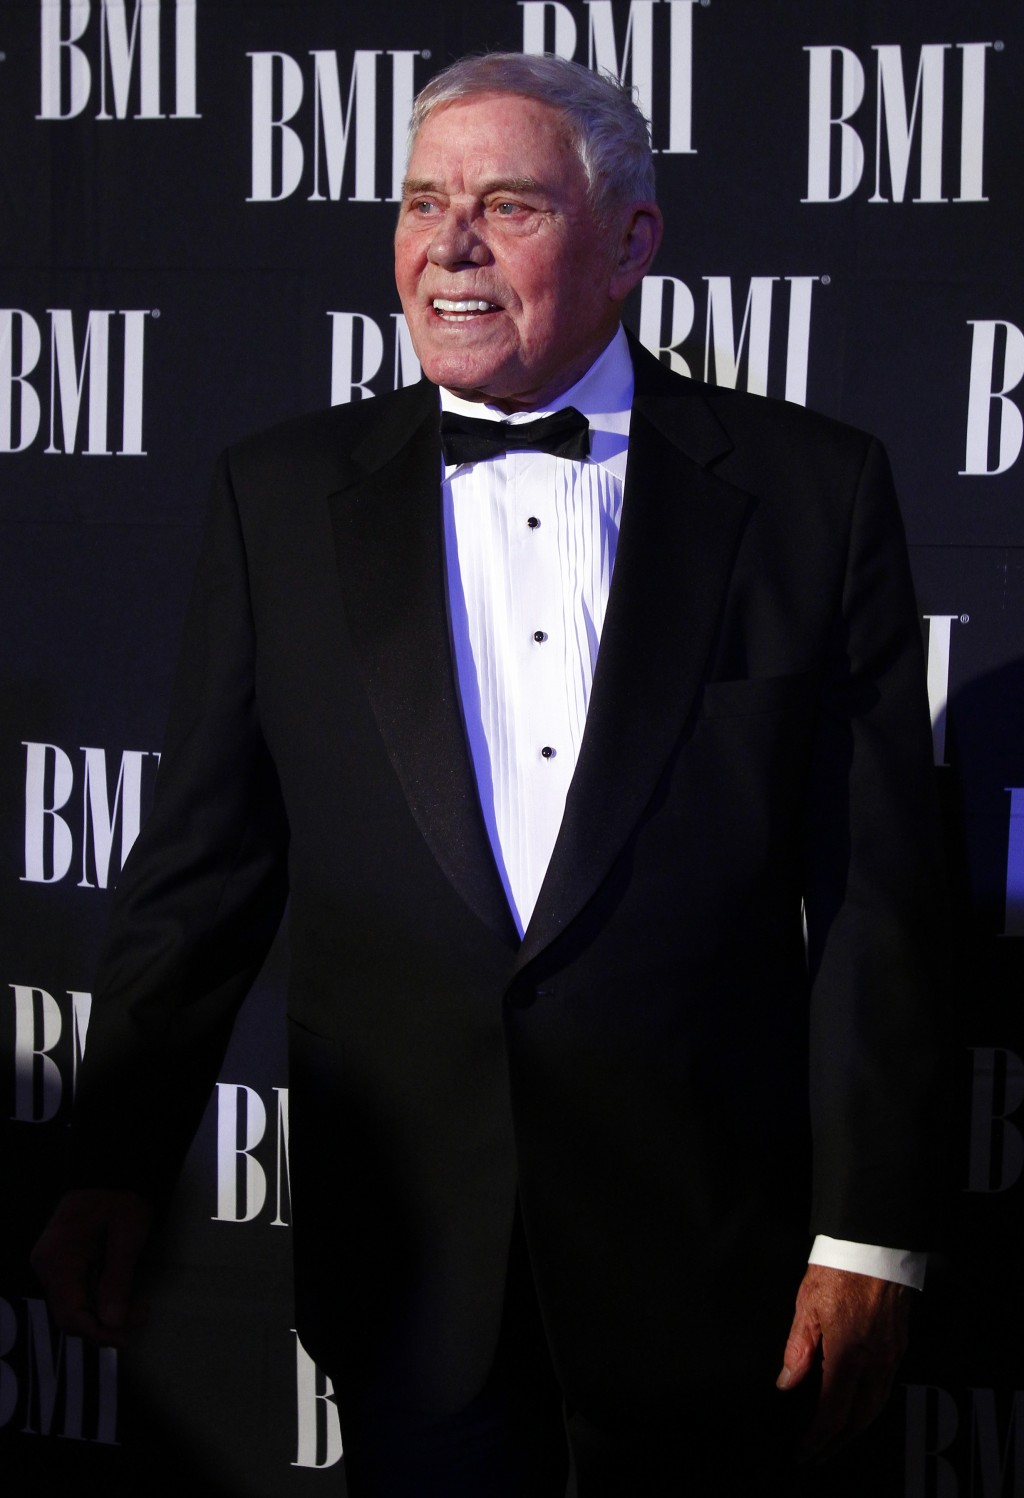 FILE - In this Oct. 30, 2012 file photo, Tom T. Hall arrives at the 60th Annual BMI Country Awards in Nashville, Tenn. Missy Elliott is making history